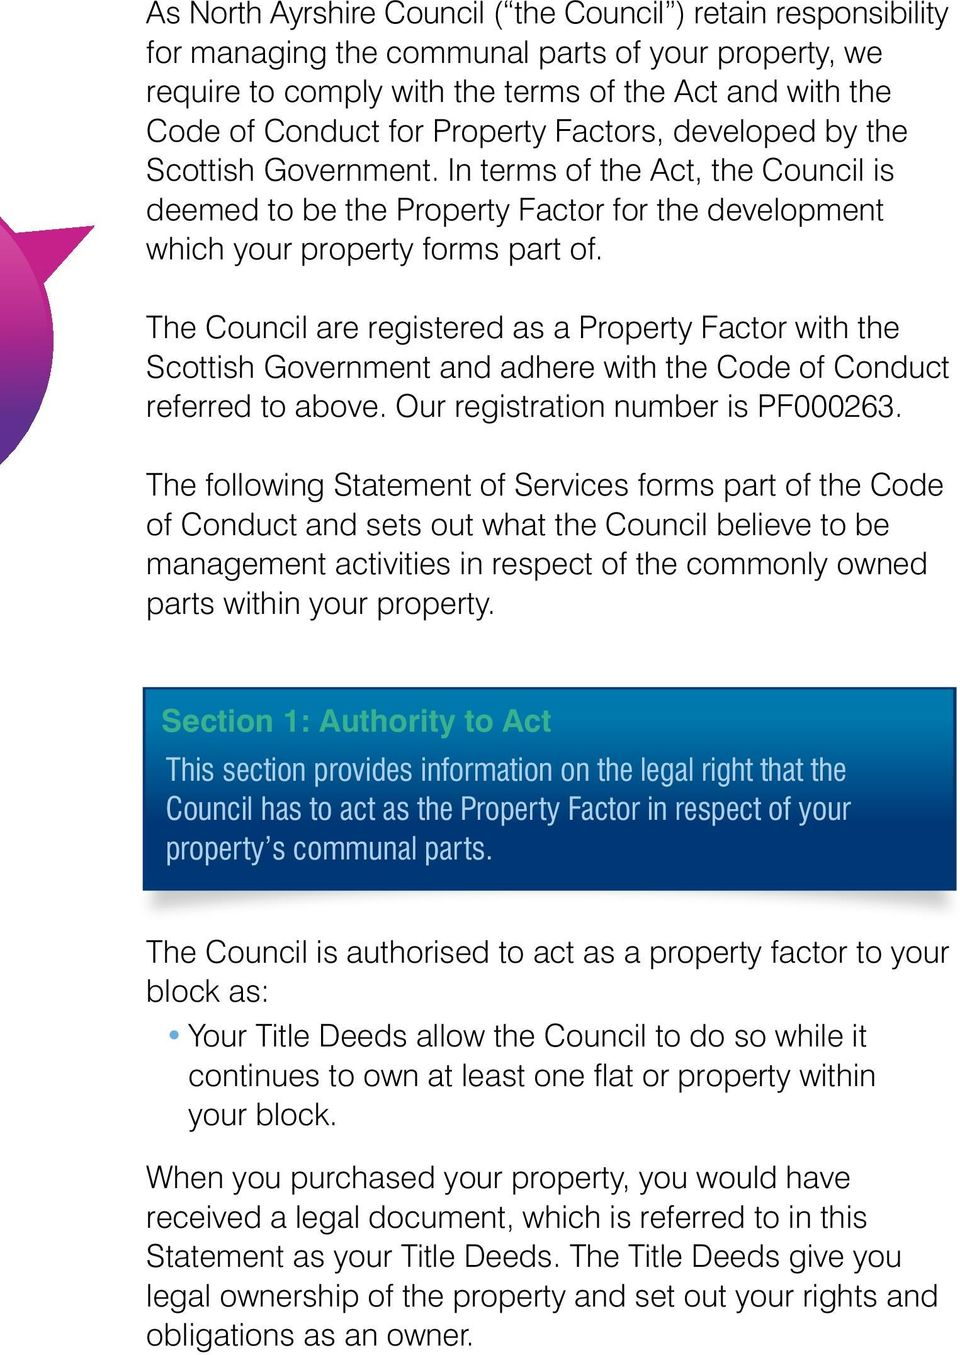 The Council are registered as a Property Factor with the Scottish Government and adhere with the Code of Conduct referred to above. Our registration number is PF000263.